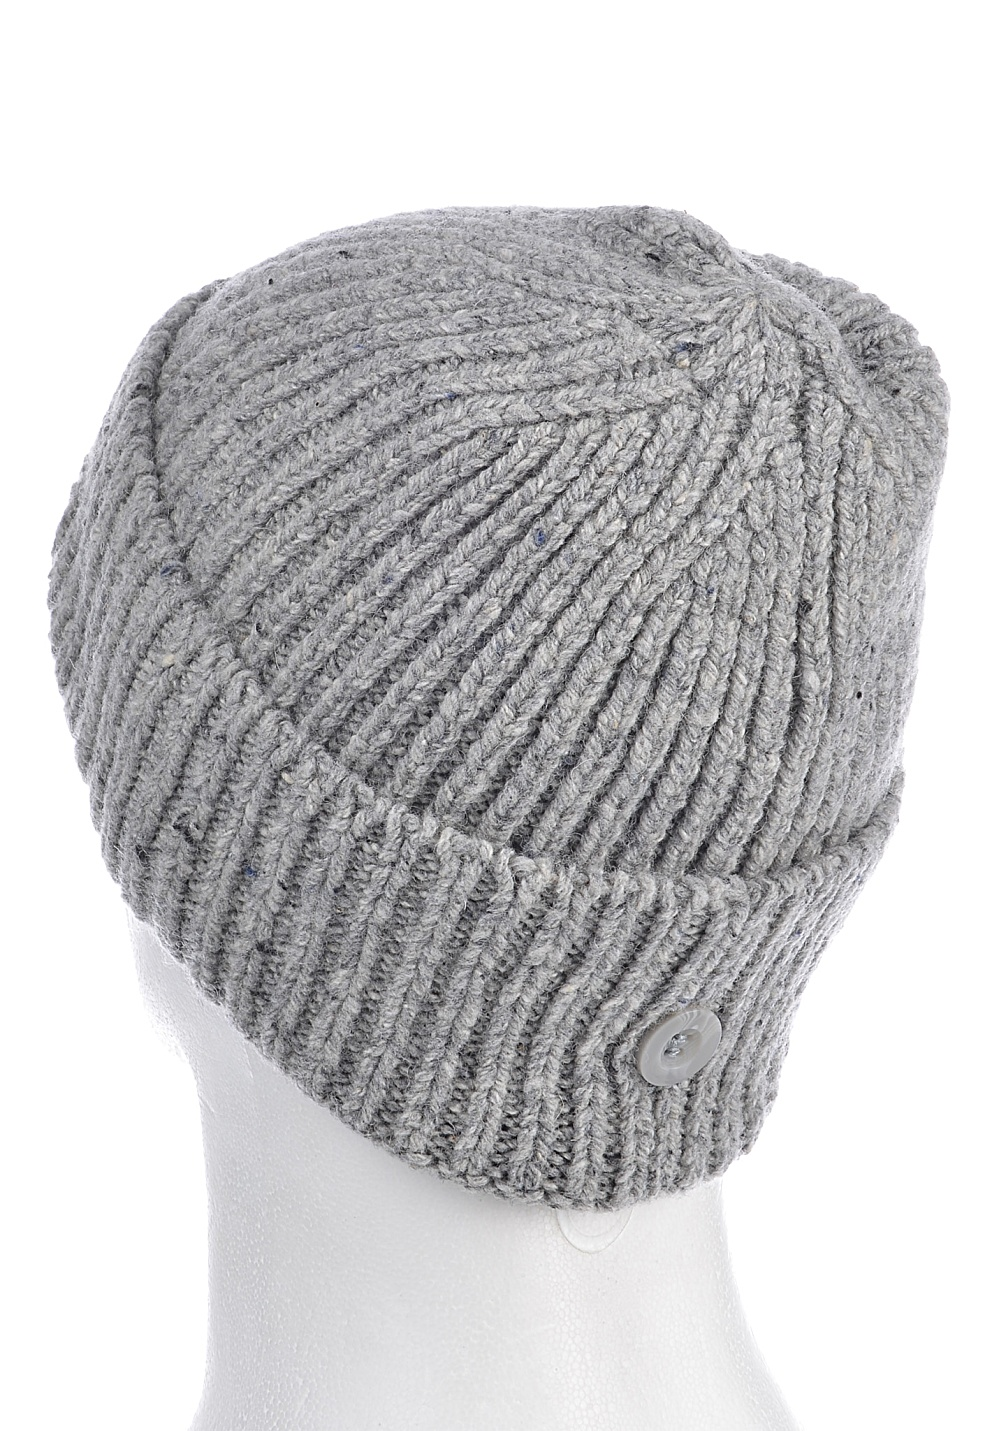 398df964db9 Previous. Next. This product is currently out of stock. carhartt WIP.  Anglistic - Beanie for Men